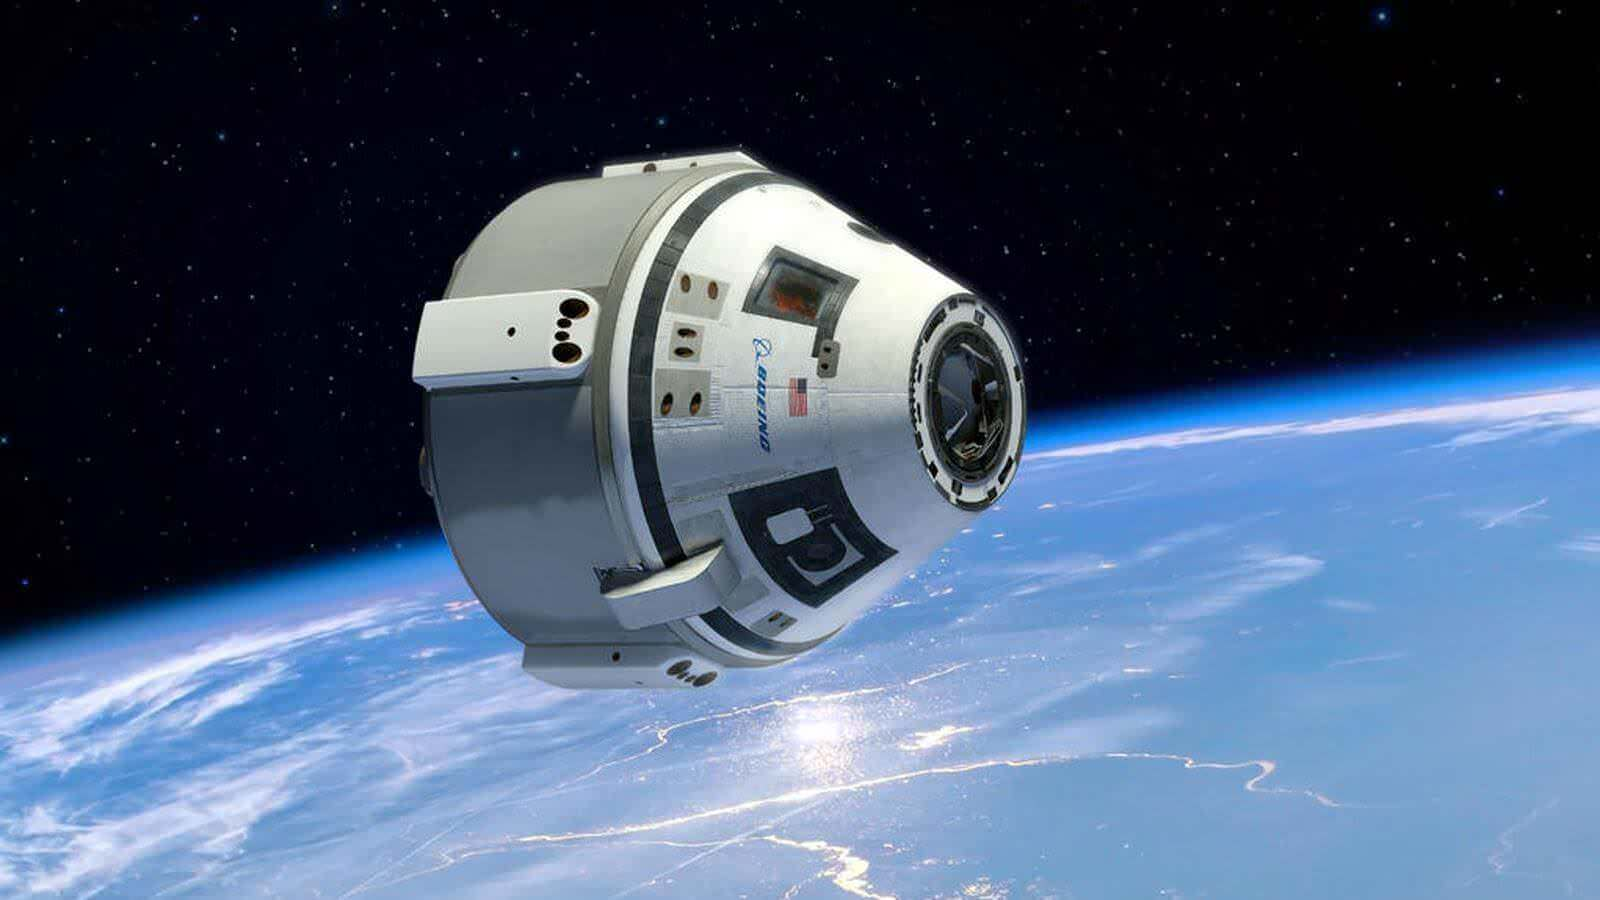 Boeing's Space Taxi Will Use More than 600 3D Printed Parts   All3DP